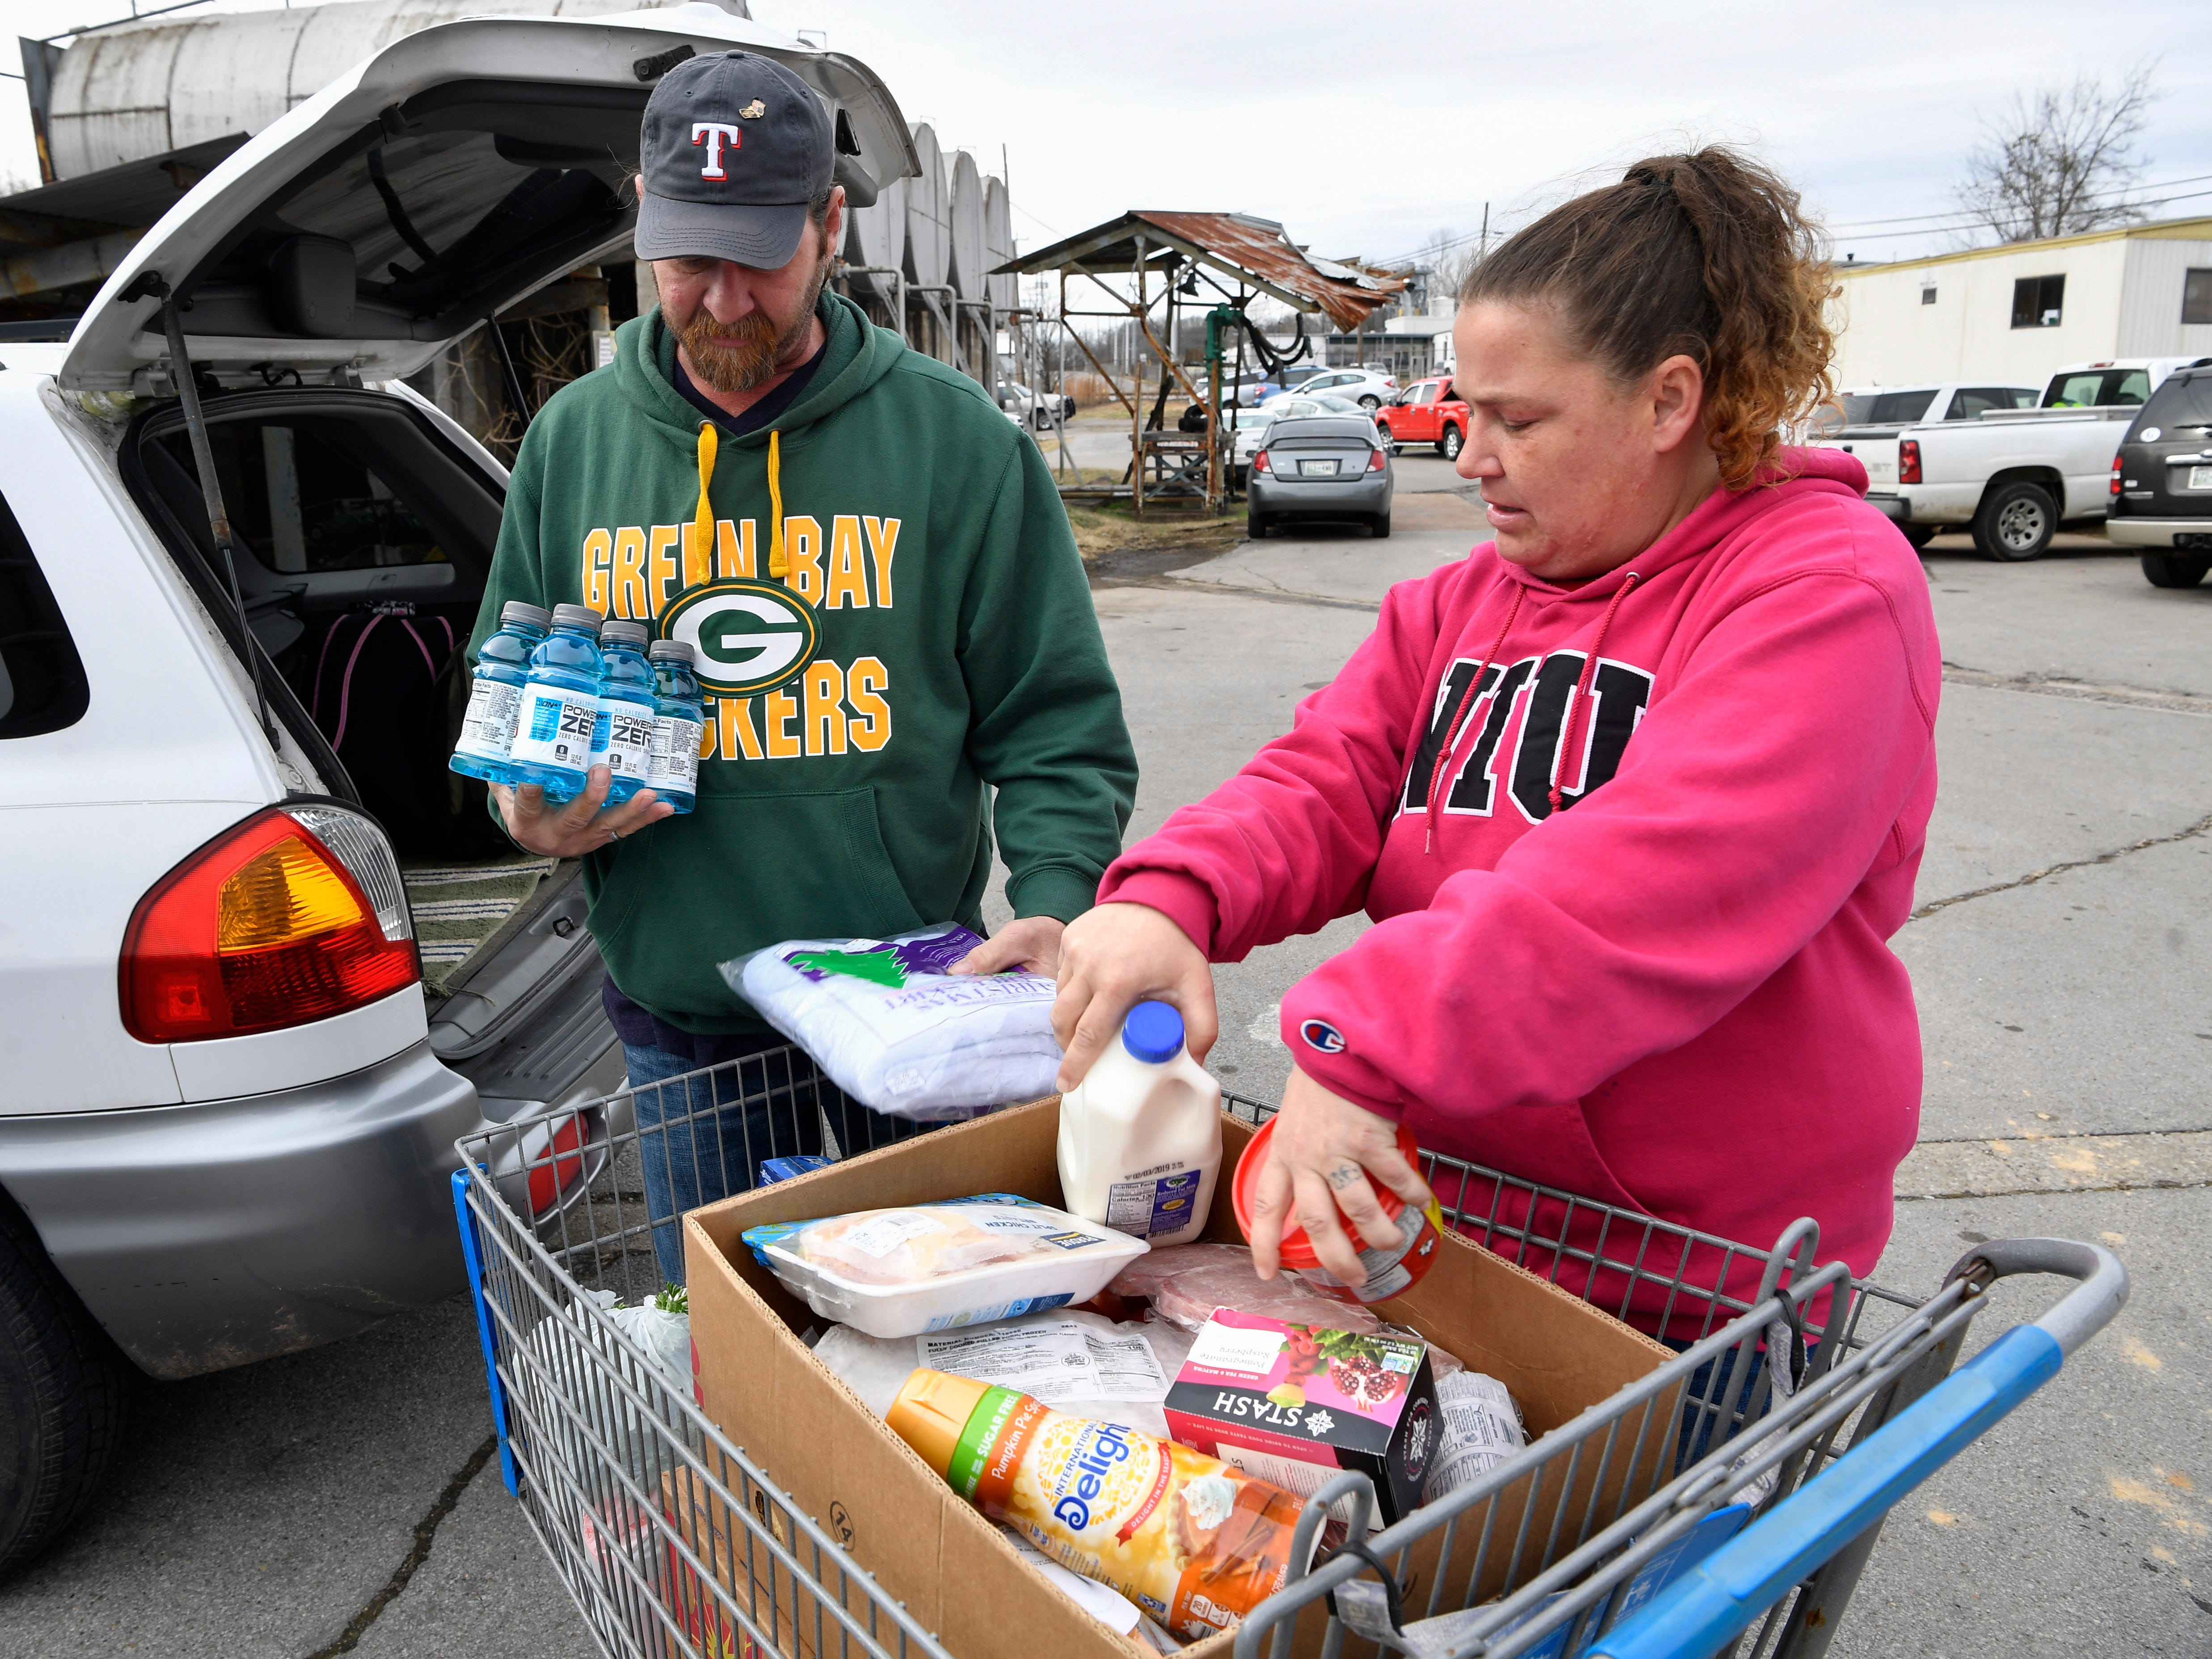 Tommi Jo French and Eddie Goering pick up food at the Manna Cafe Monday, Jan. 28, 2019, in Clarksville, Tenn.. They have been living on the streets but just recently acquired an apartment.